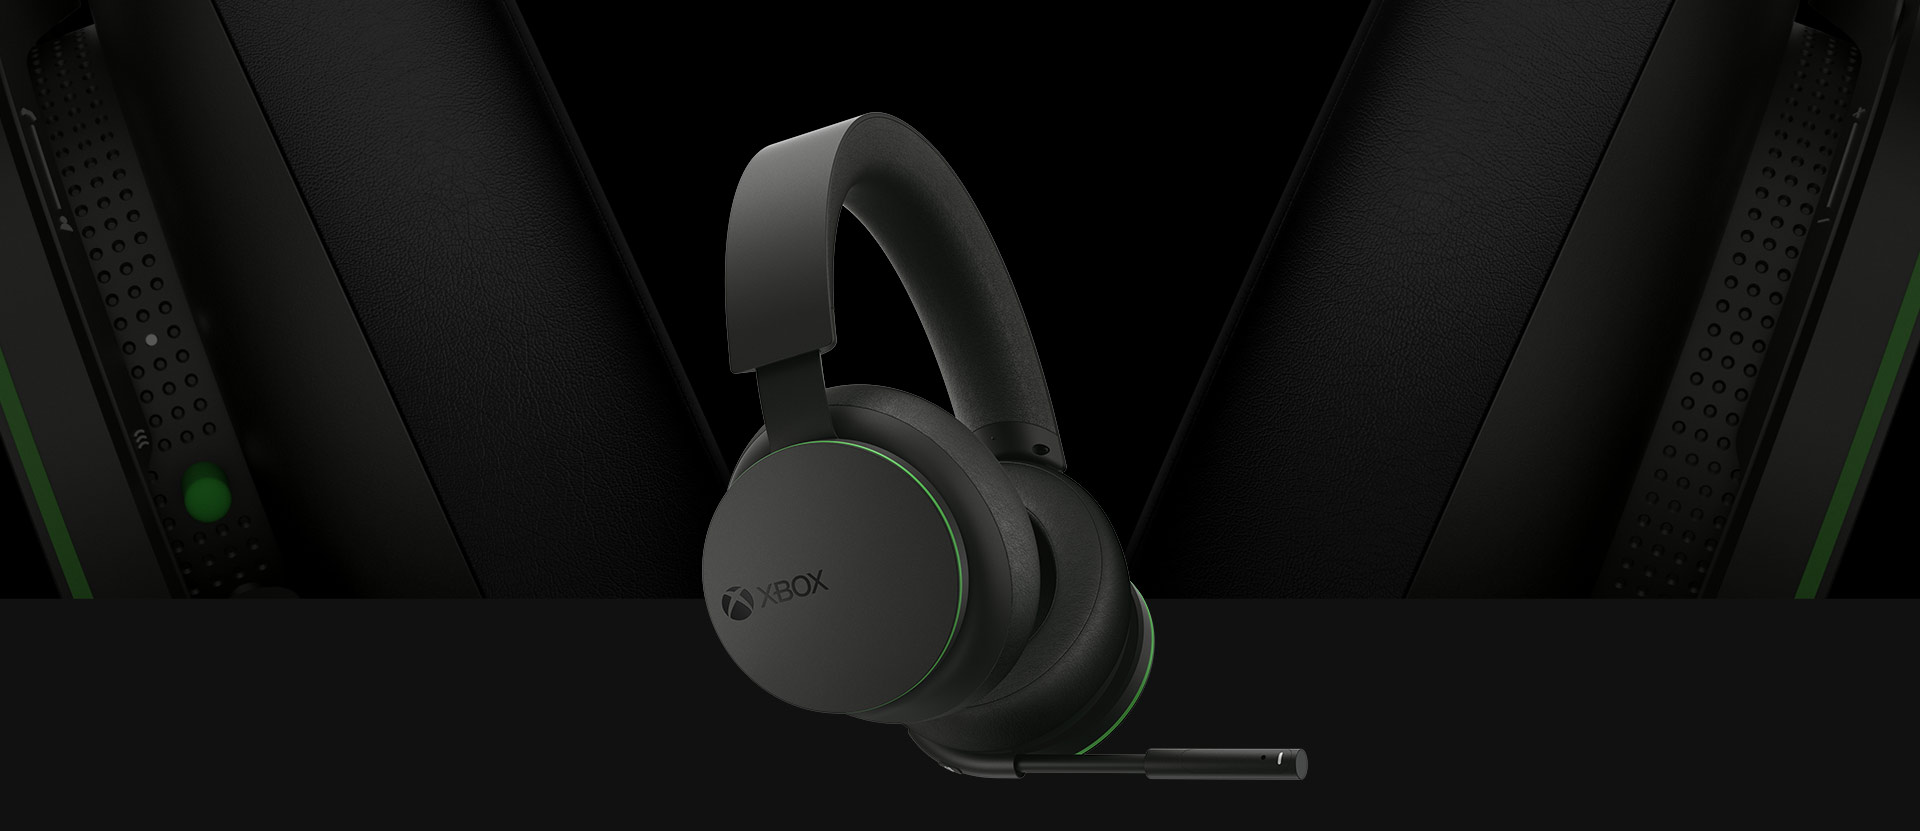 Xbox Wireless Headset: new entry della famiglia accessori Xbox